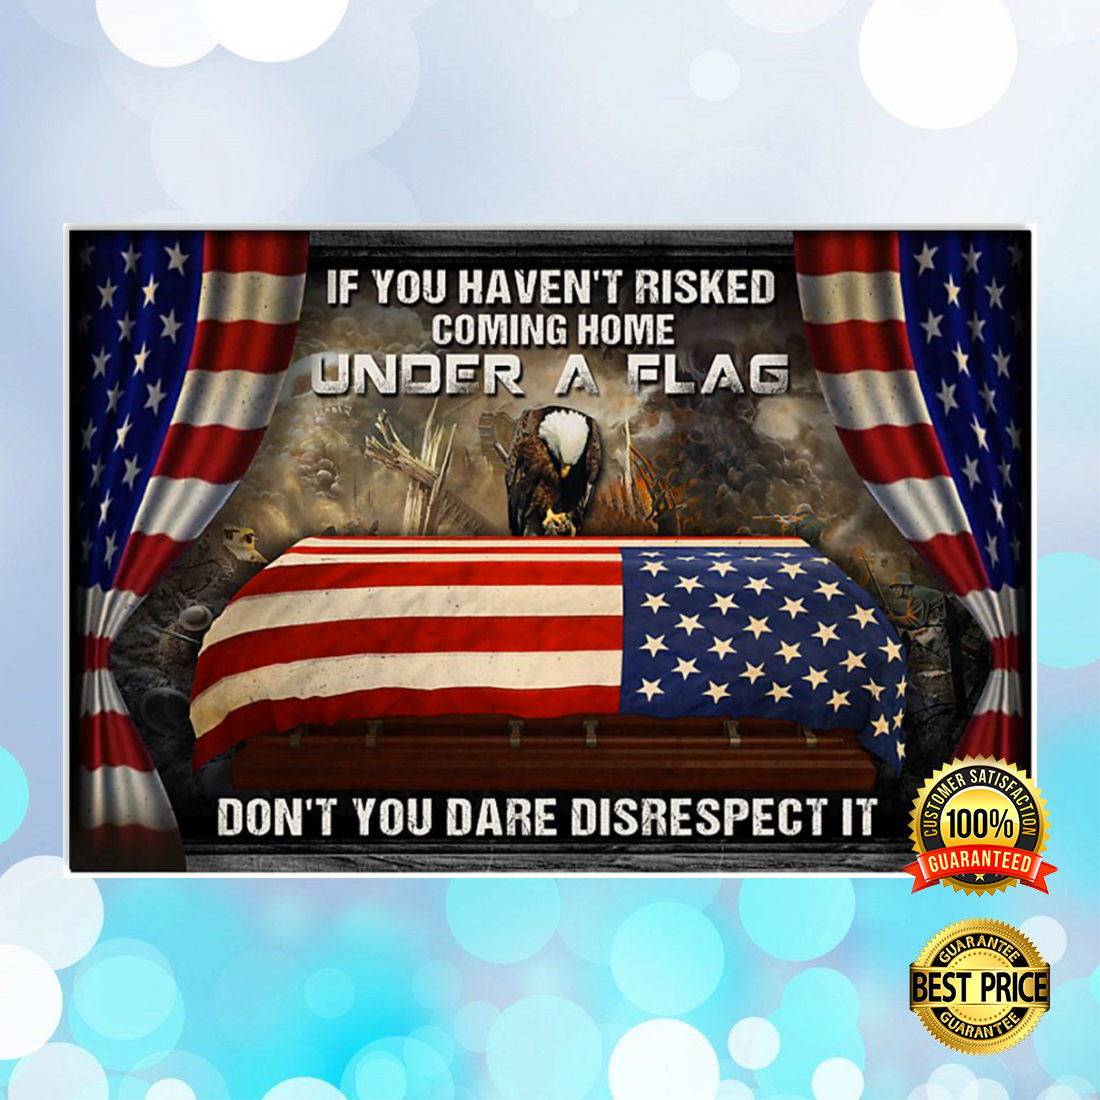 IF YOU HAVEN'T RISKED COMING HOME UNDER A FLAG DON'T YOU DARE DISRESPECT IT POSTER 6